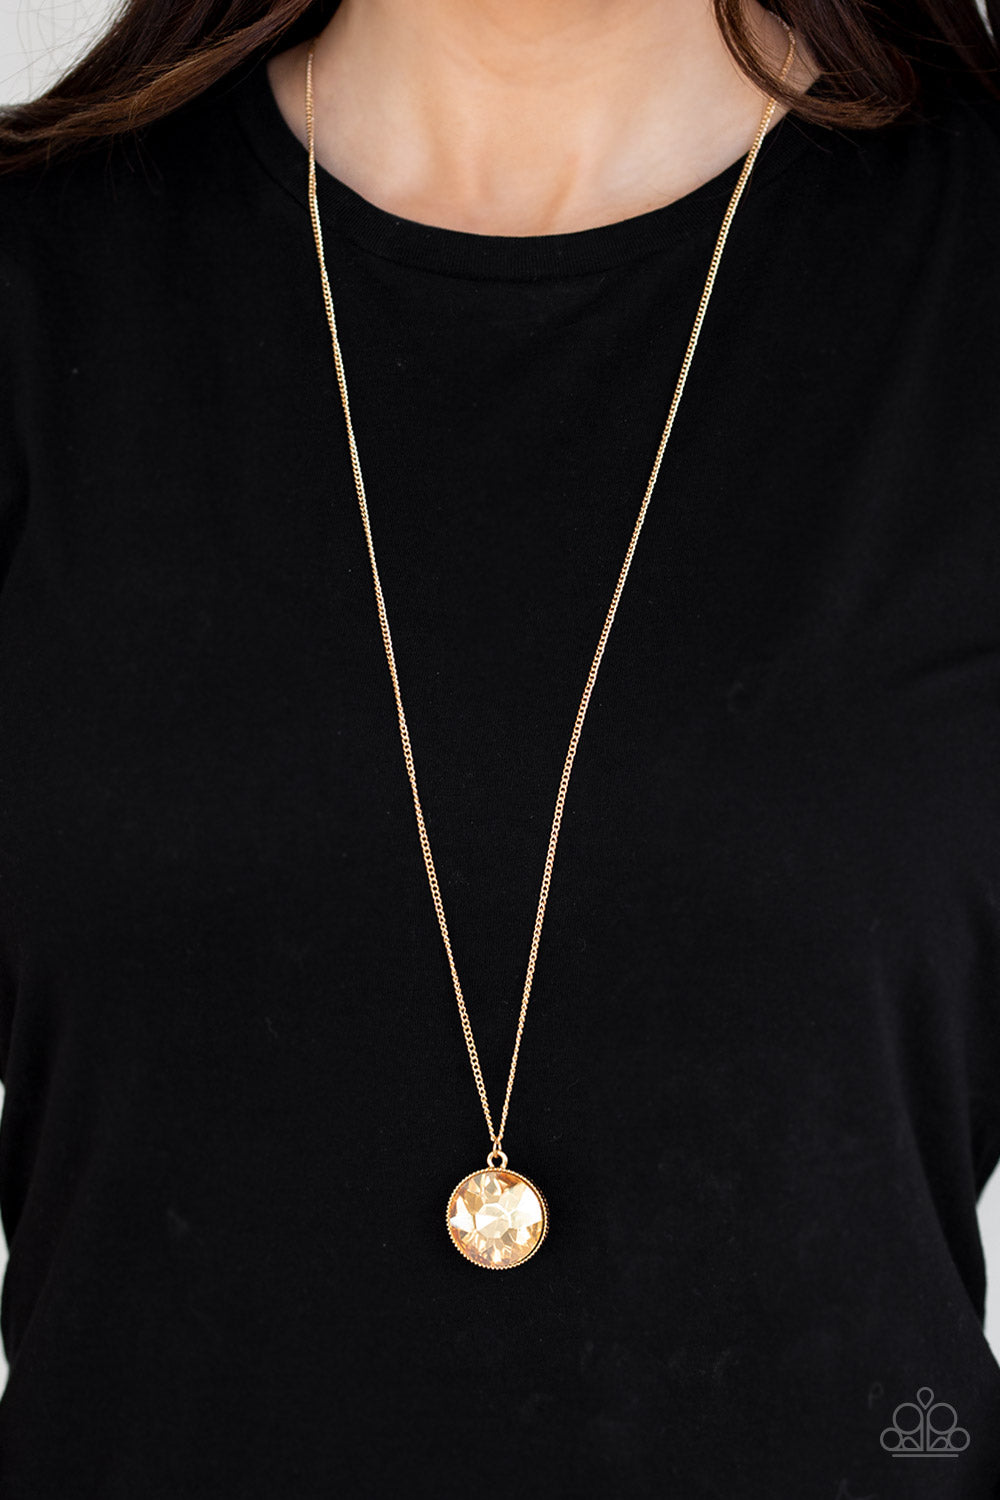 Paparazzi Jewelry & Accessories - Dauntless Diva - Gold Necklace. Bling By Titia Boutique